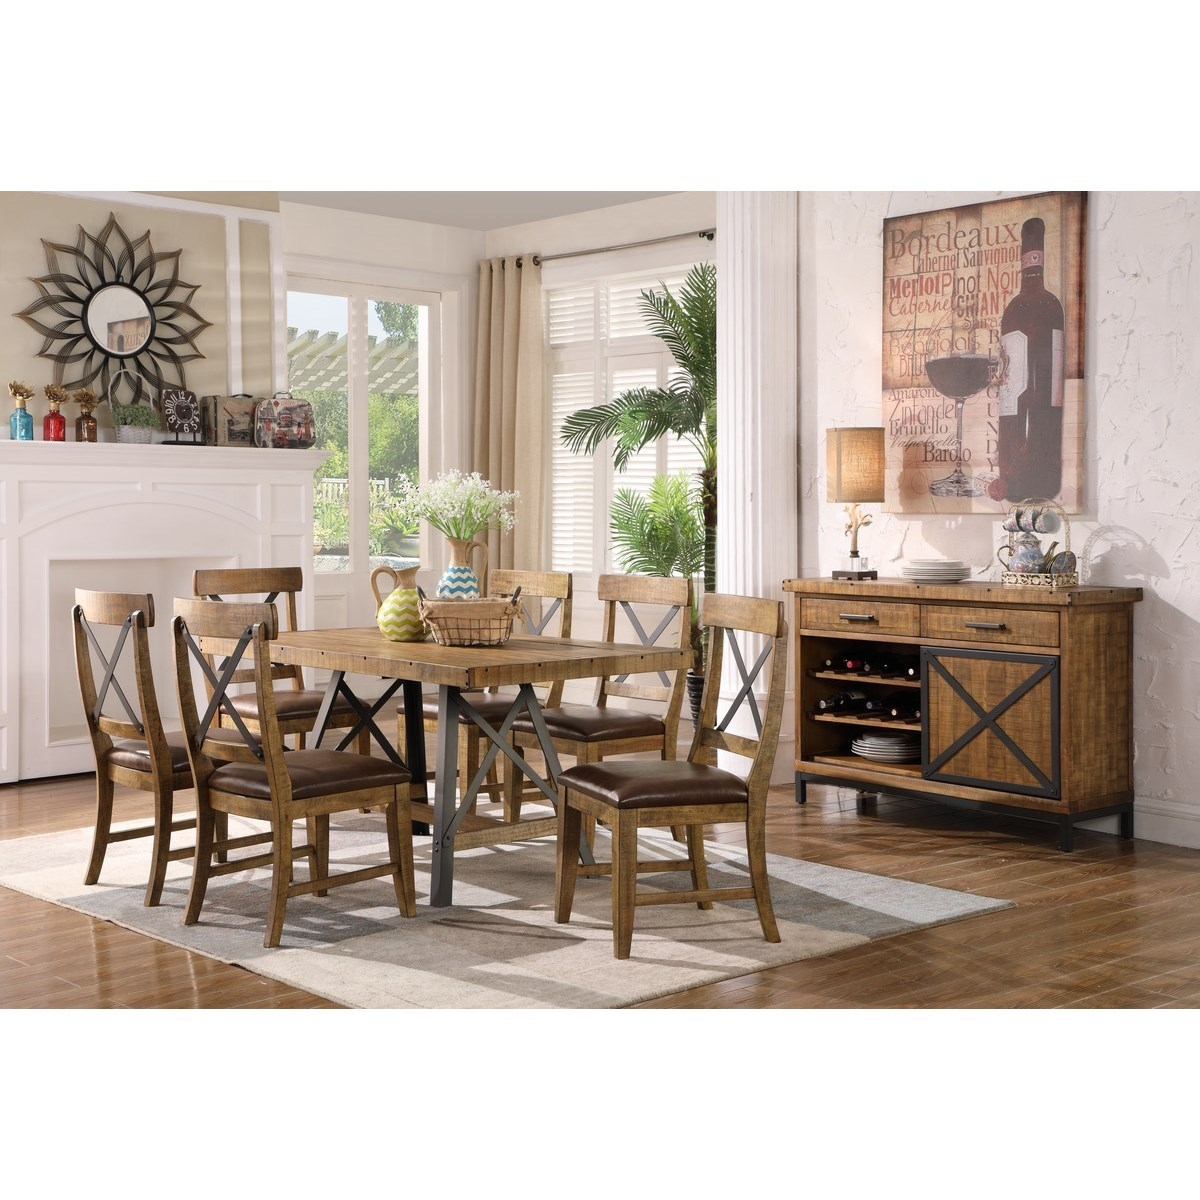 Chandler Dining Room Group by Emerald at Northeast Factory Direct